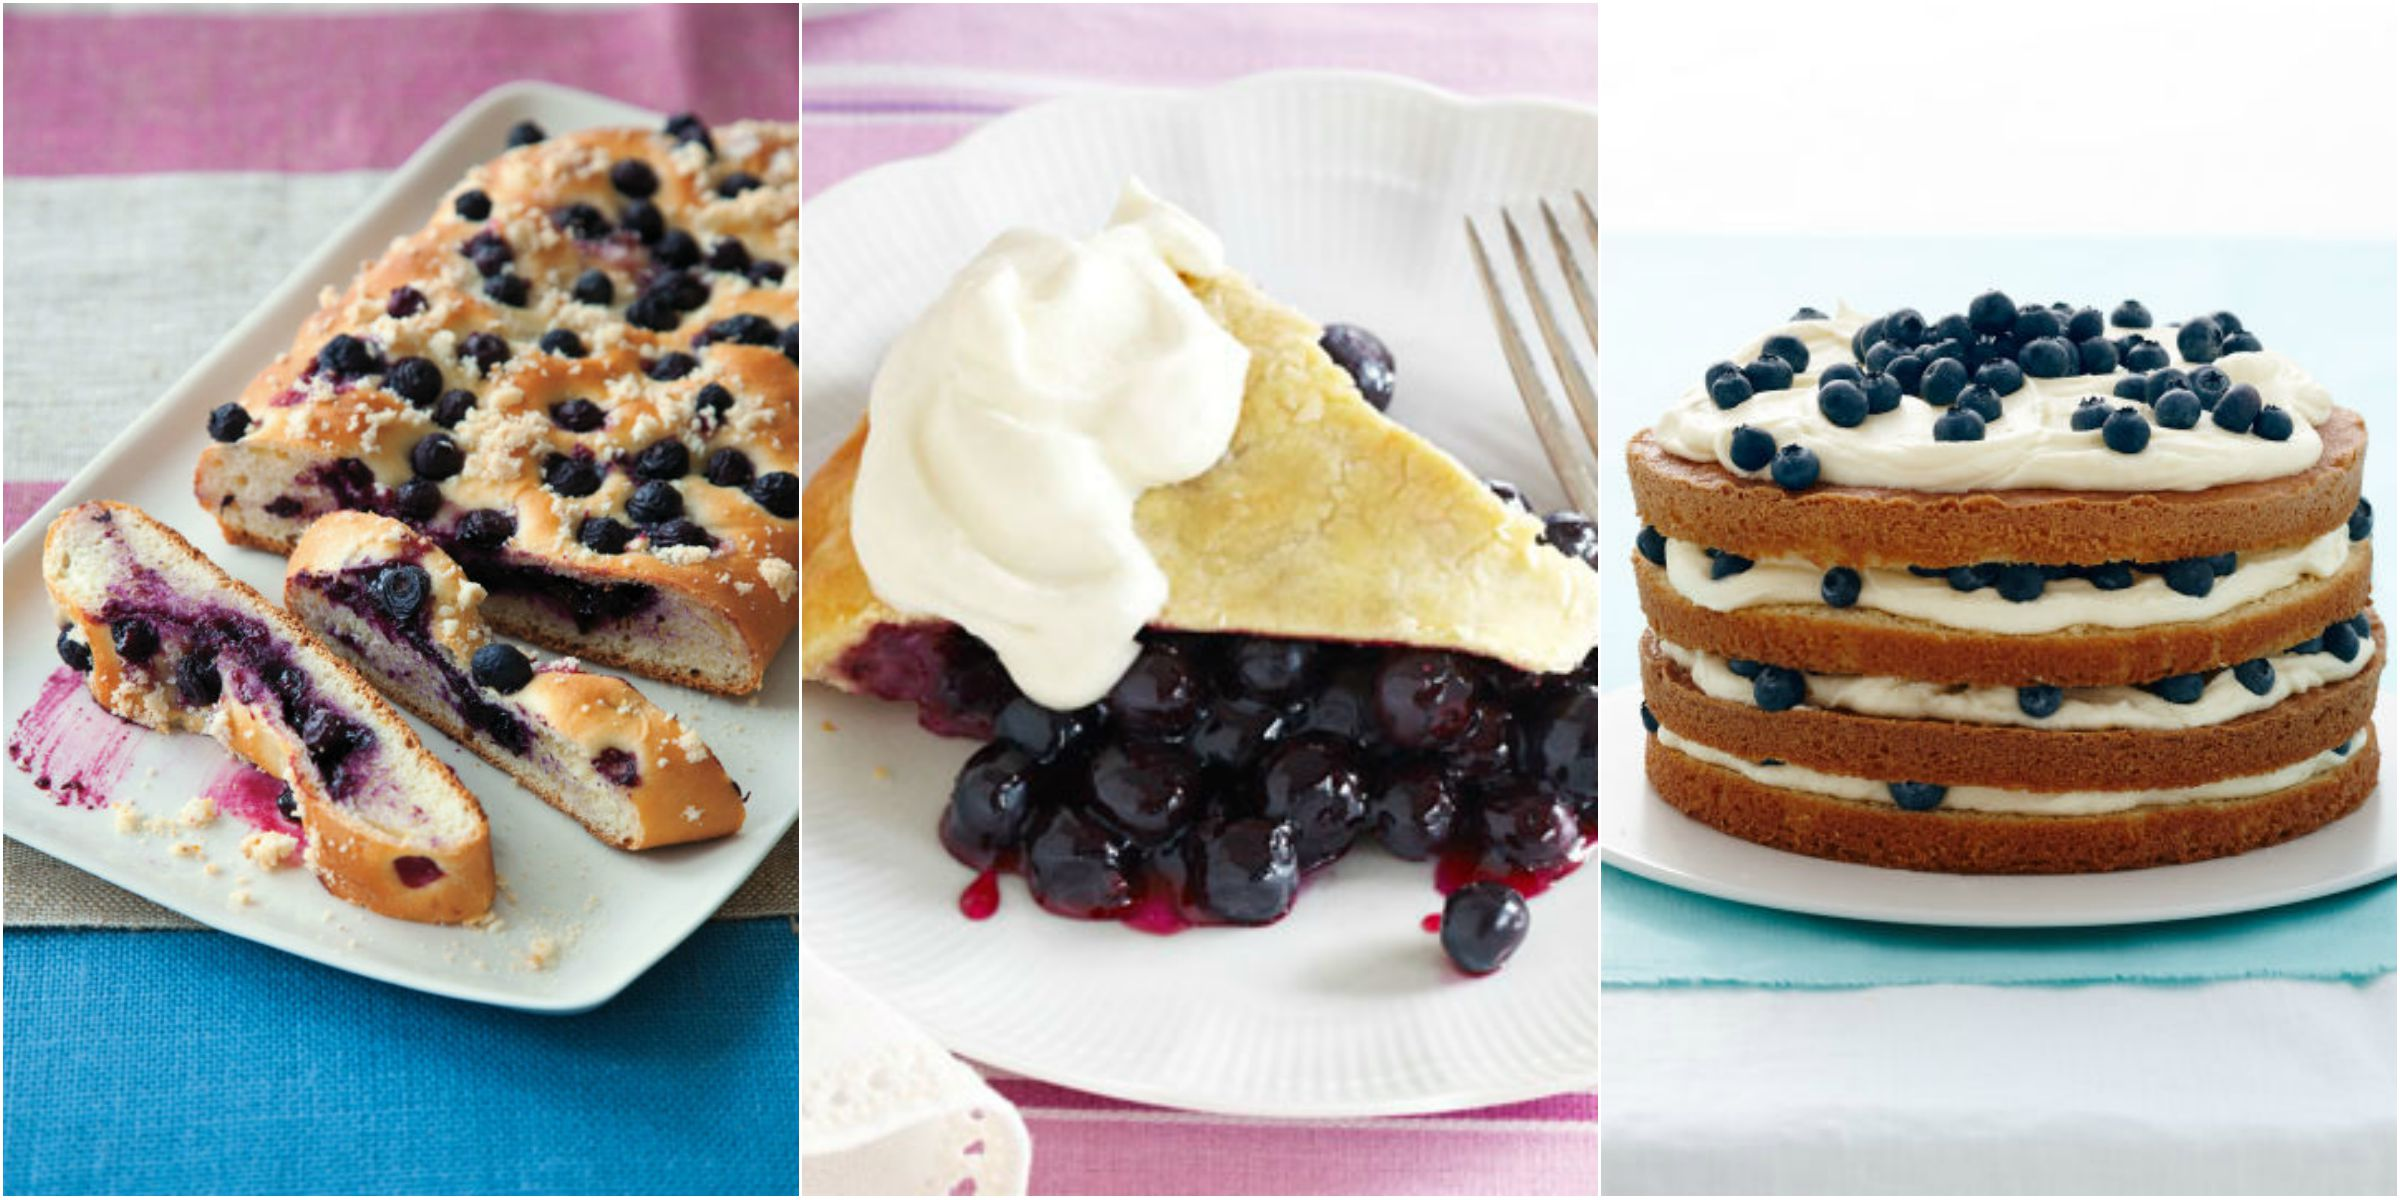 Blueberry Desserts - Recipes for Fresh Blueberry Desserts